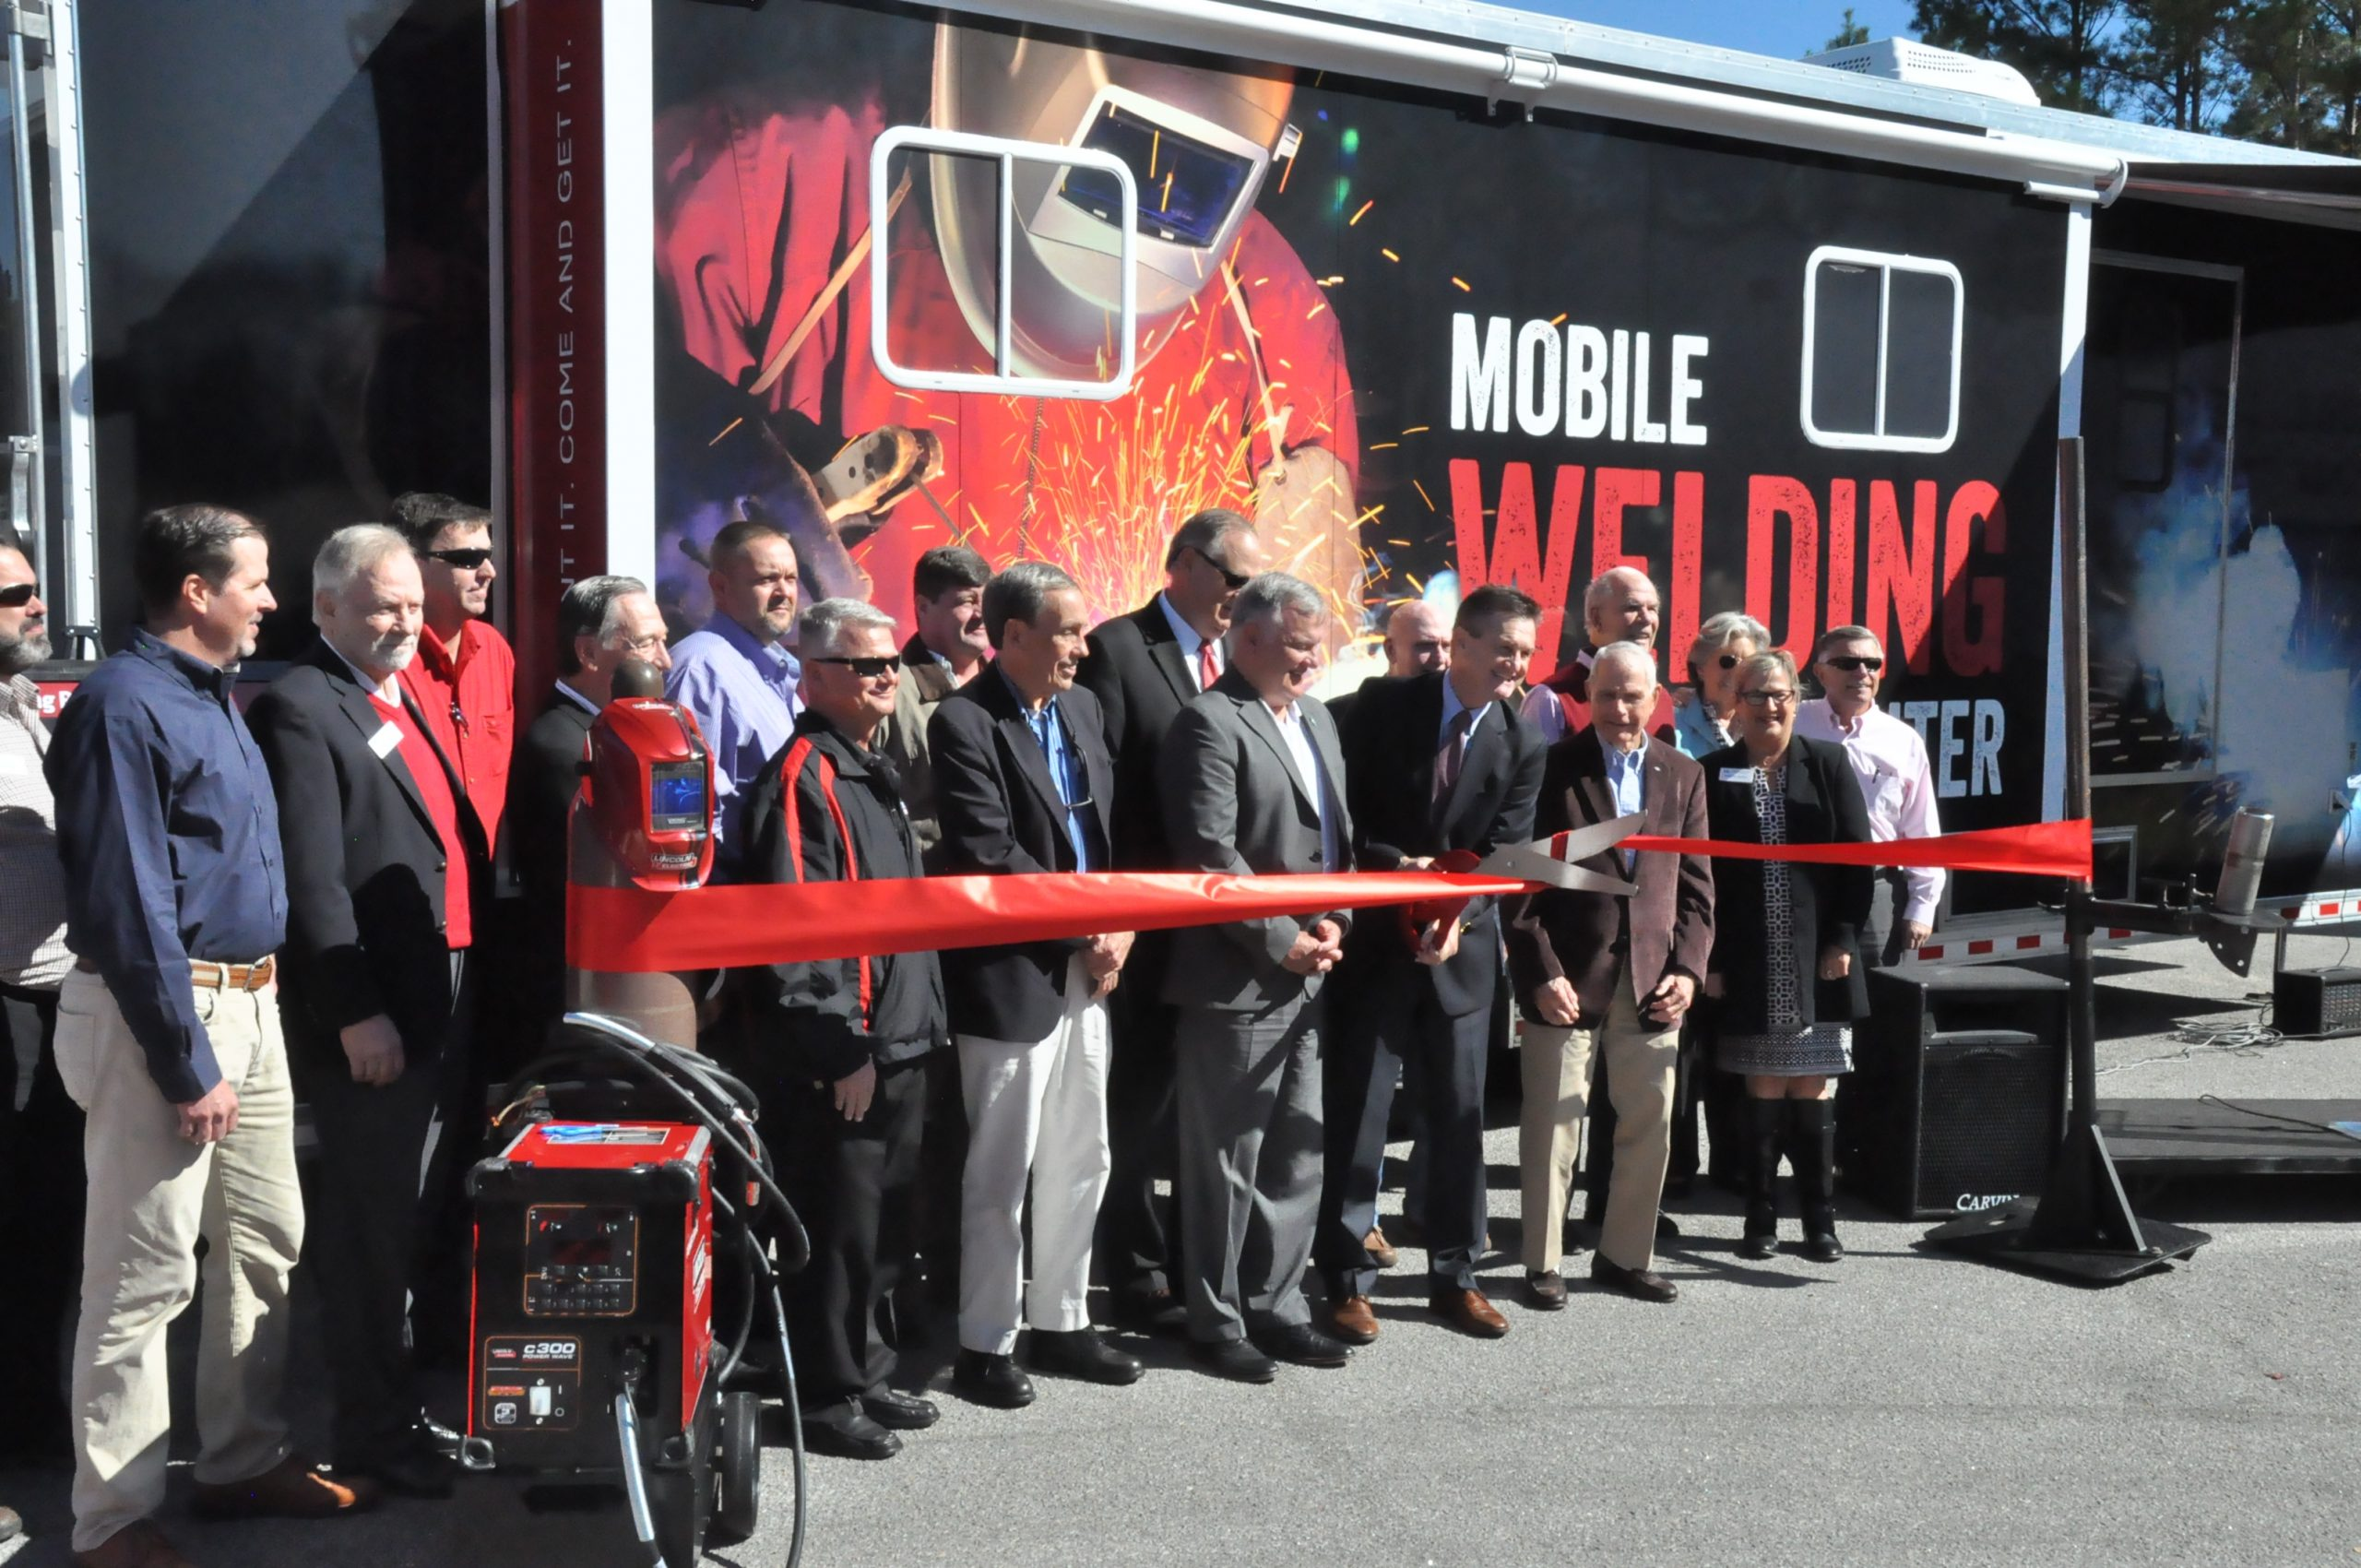 Technical College launches Mobile Welding Training Center and CDL program